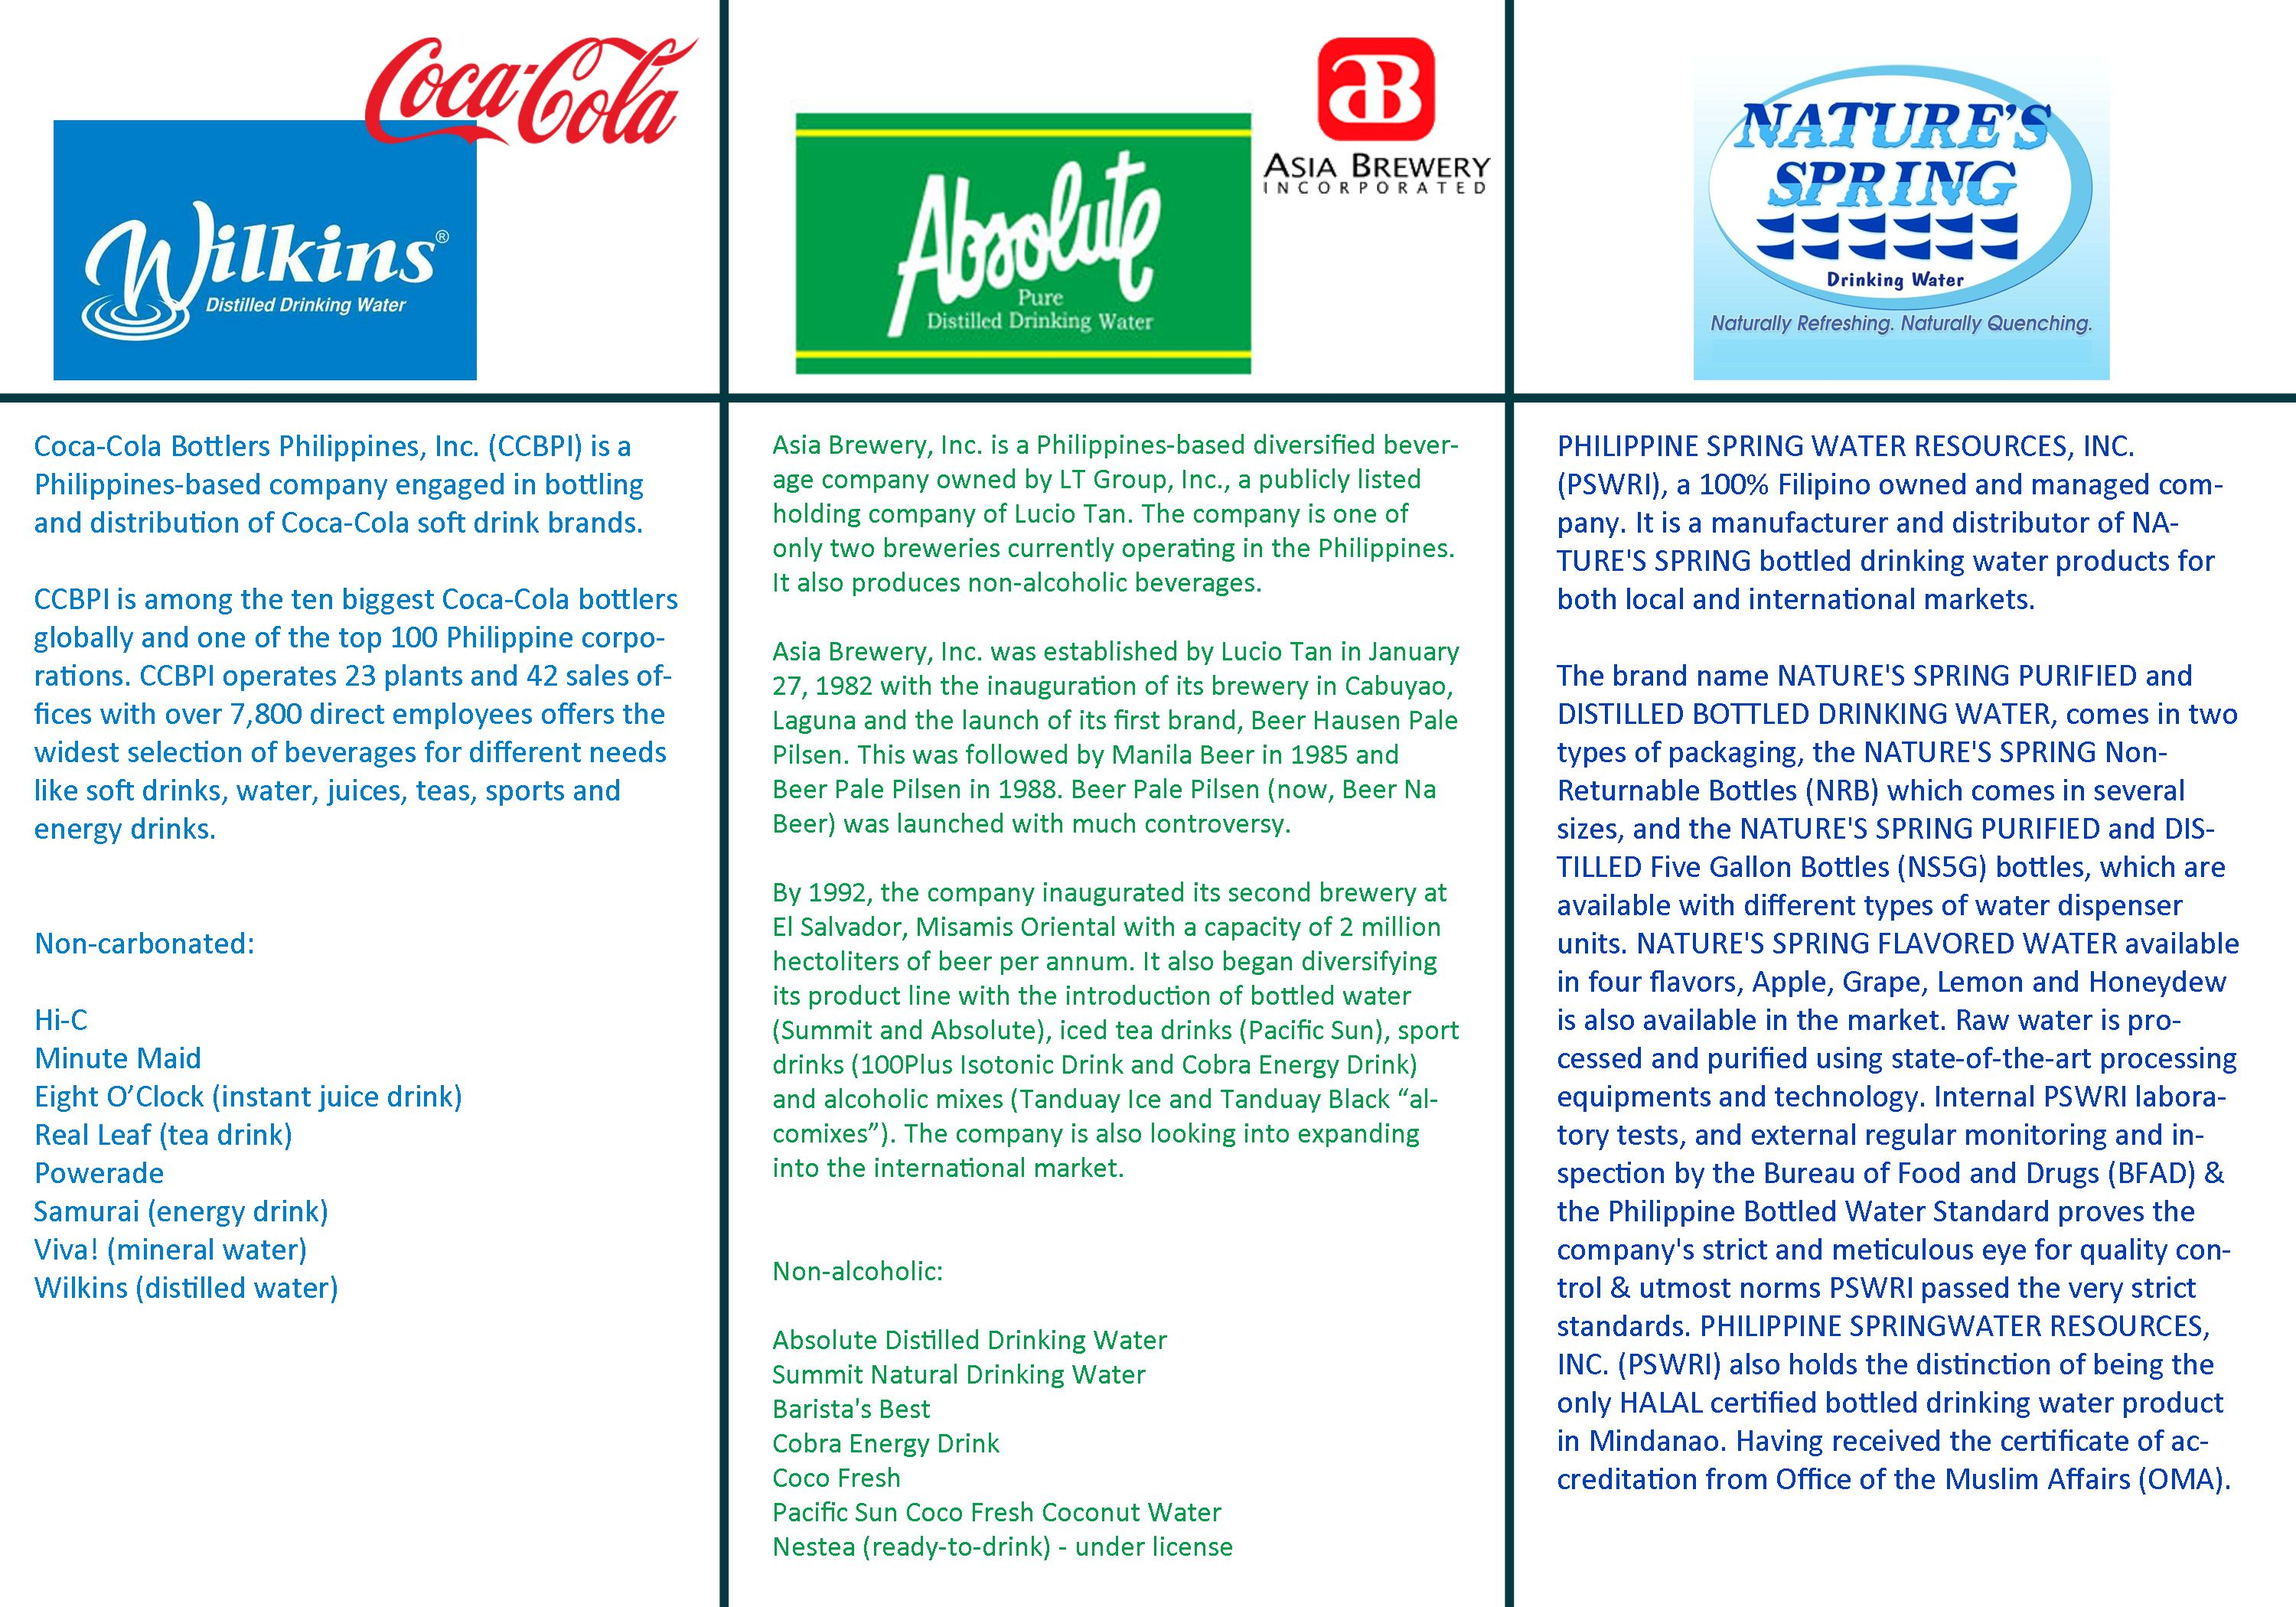 Profile Of Competitive Brands Drinks Brands Soft Drinks Absolut